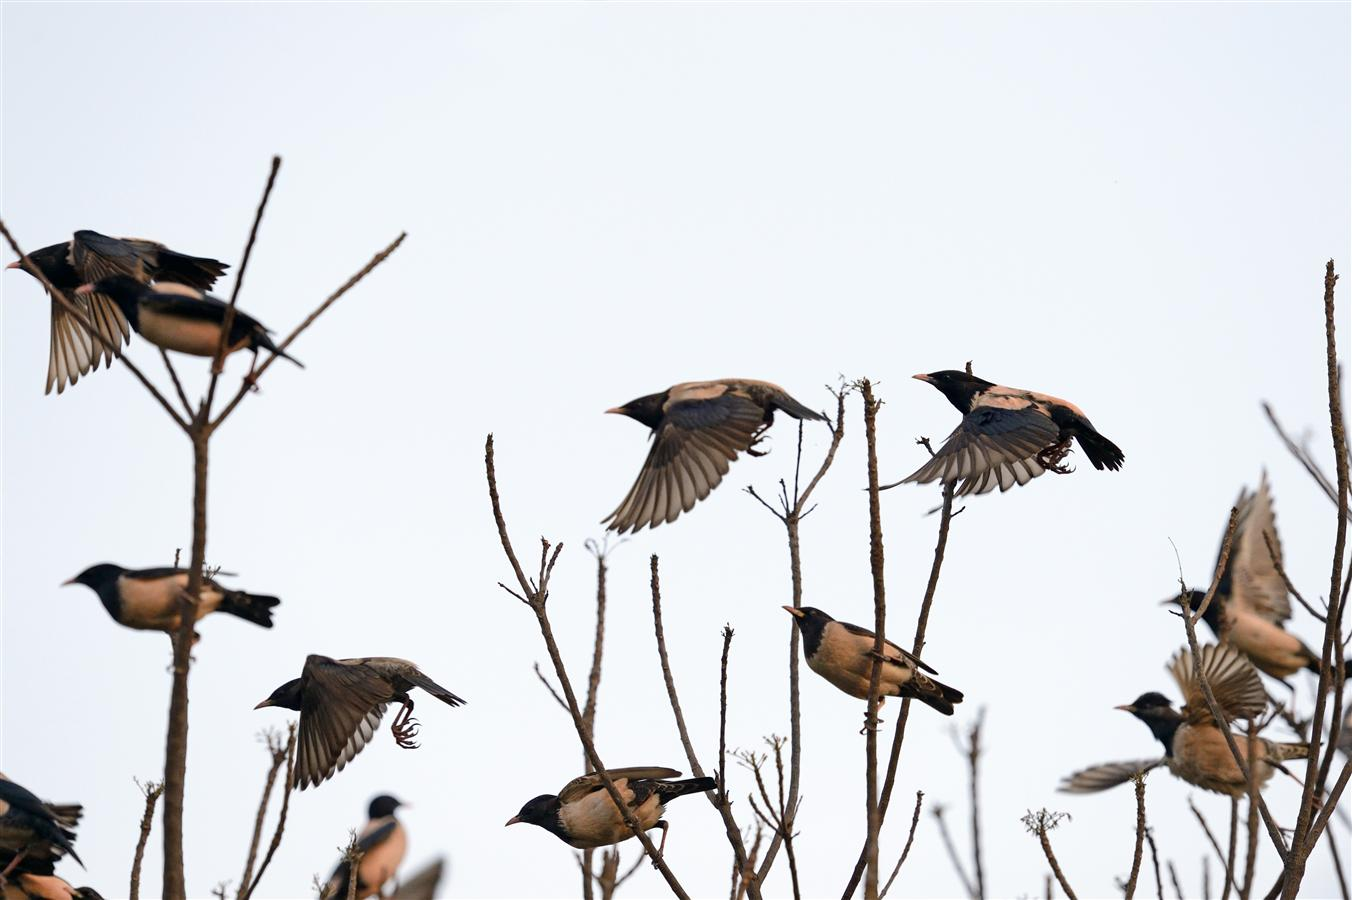 They can be seen perching in large numbers on fruit trees in the Estate during the months when they pass through Delhi.